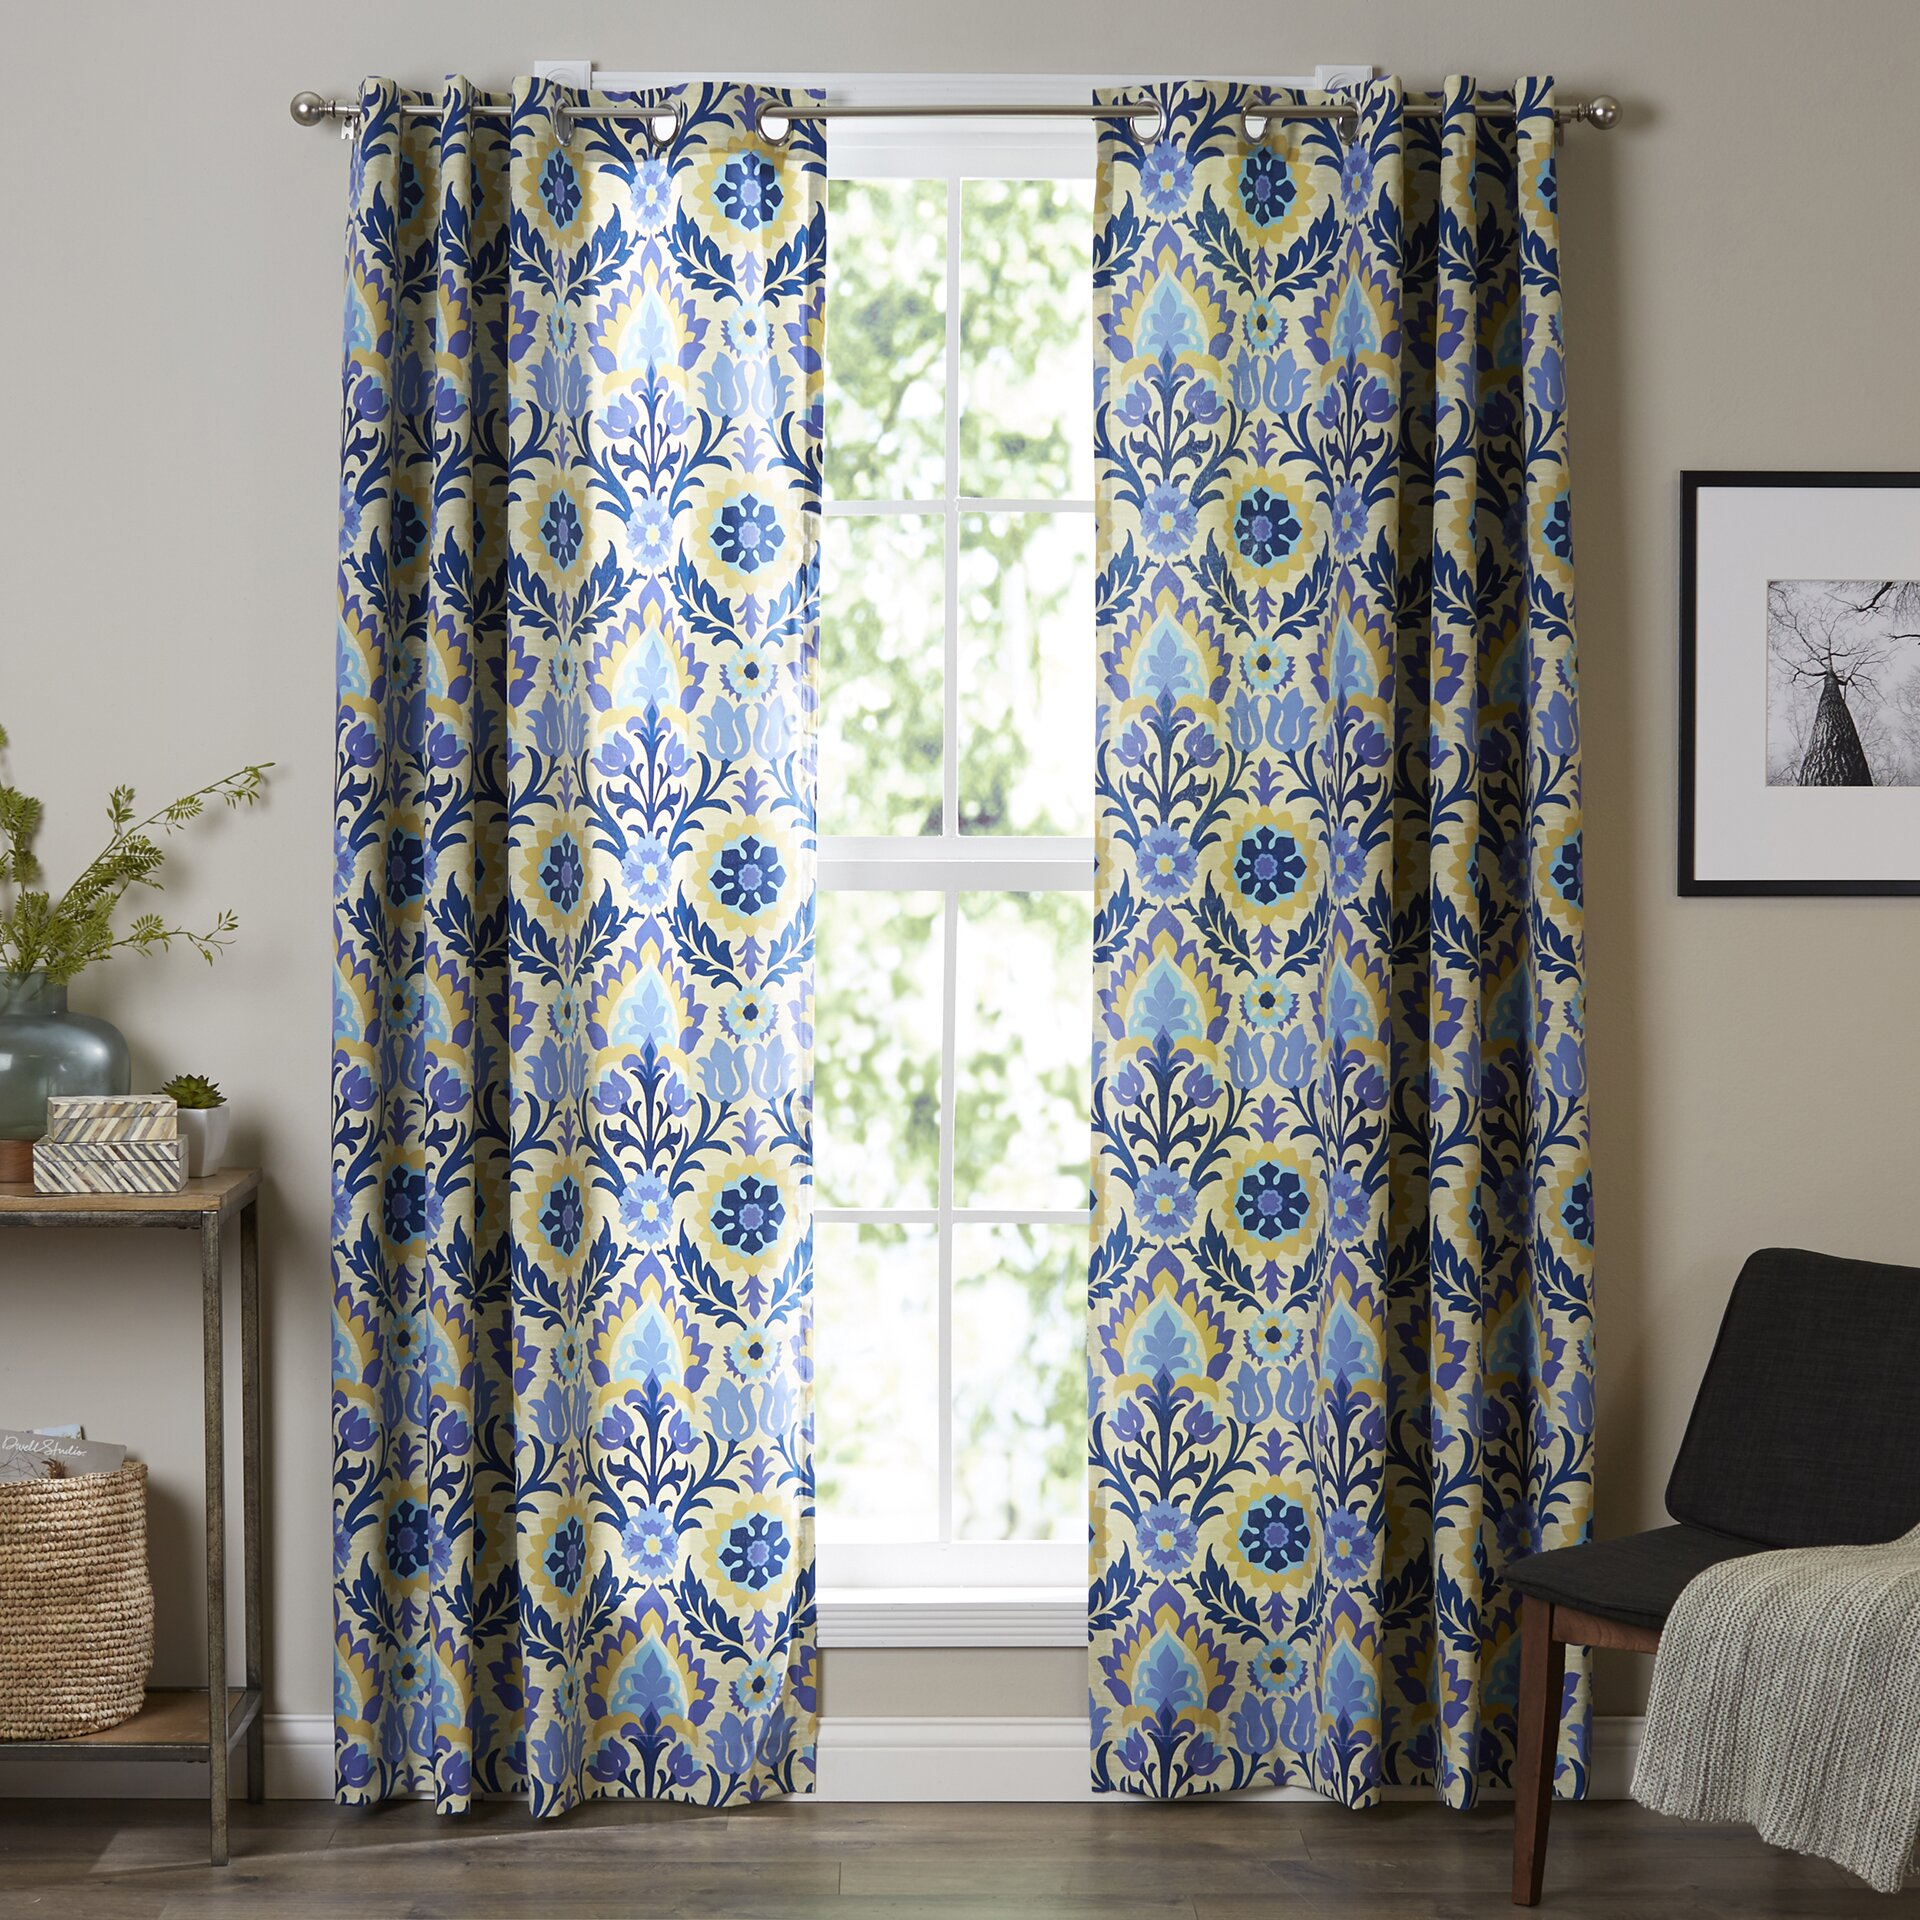 Waverly Sun-N-Shade Damask Semi-Sheer Single Curtain Panel